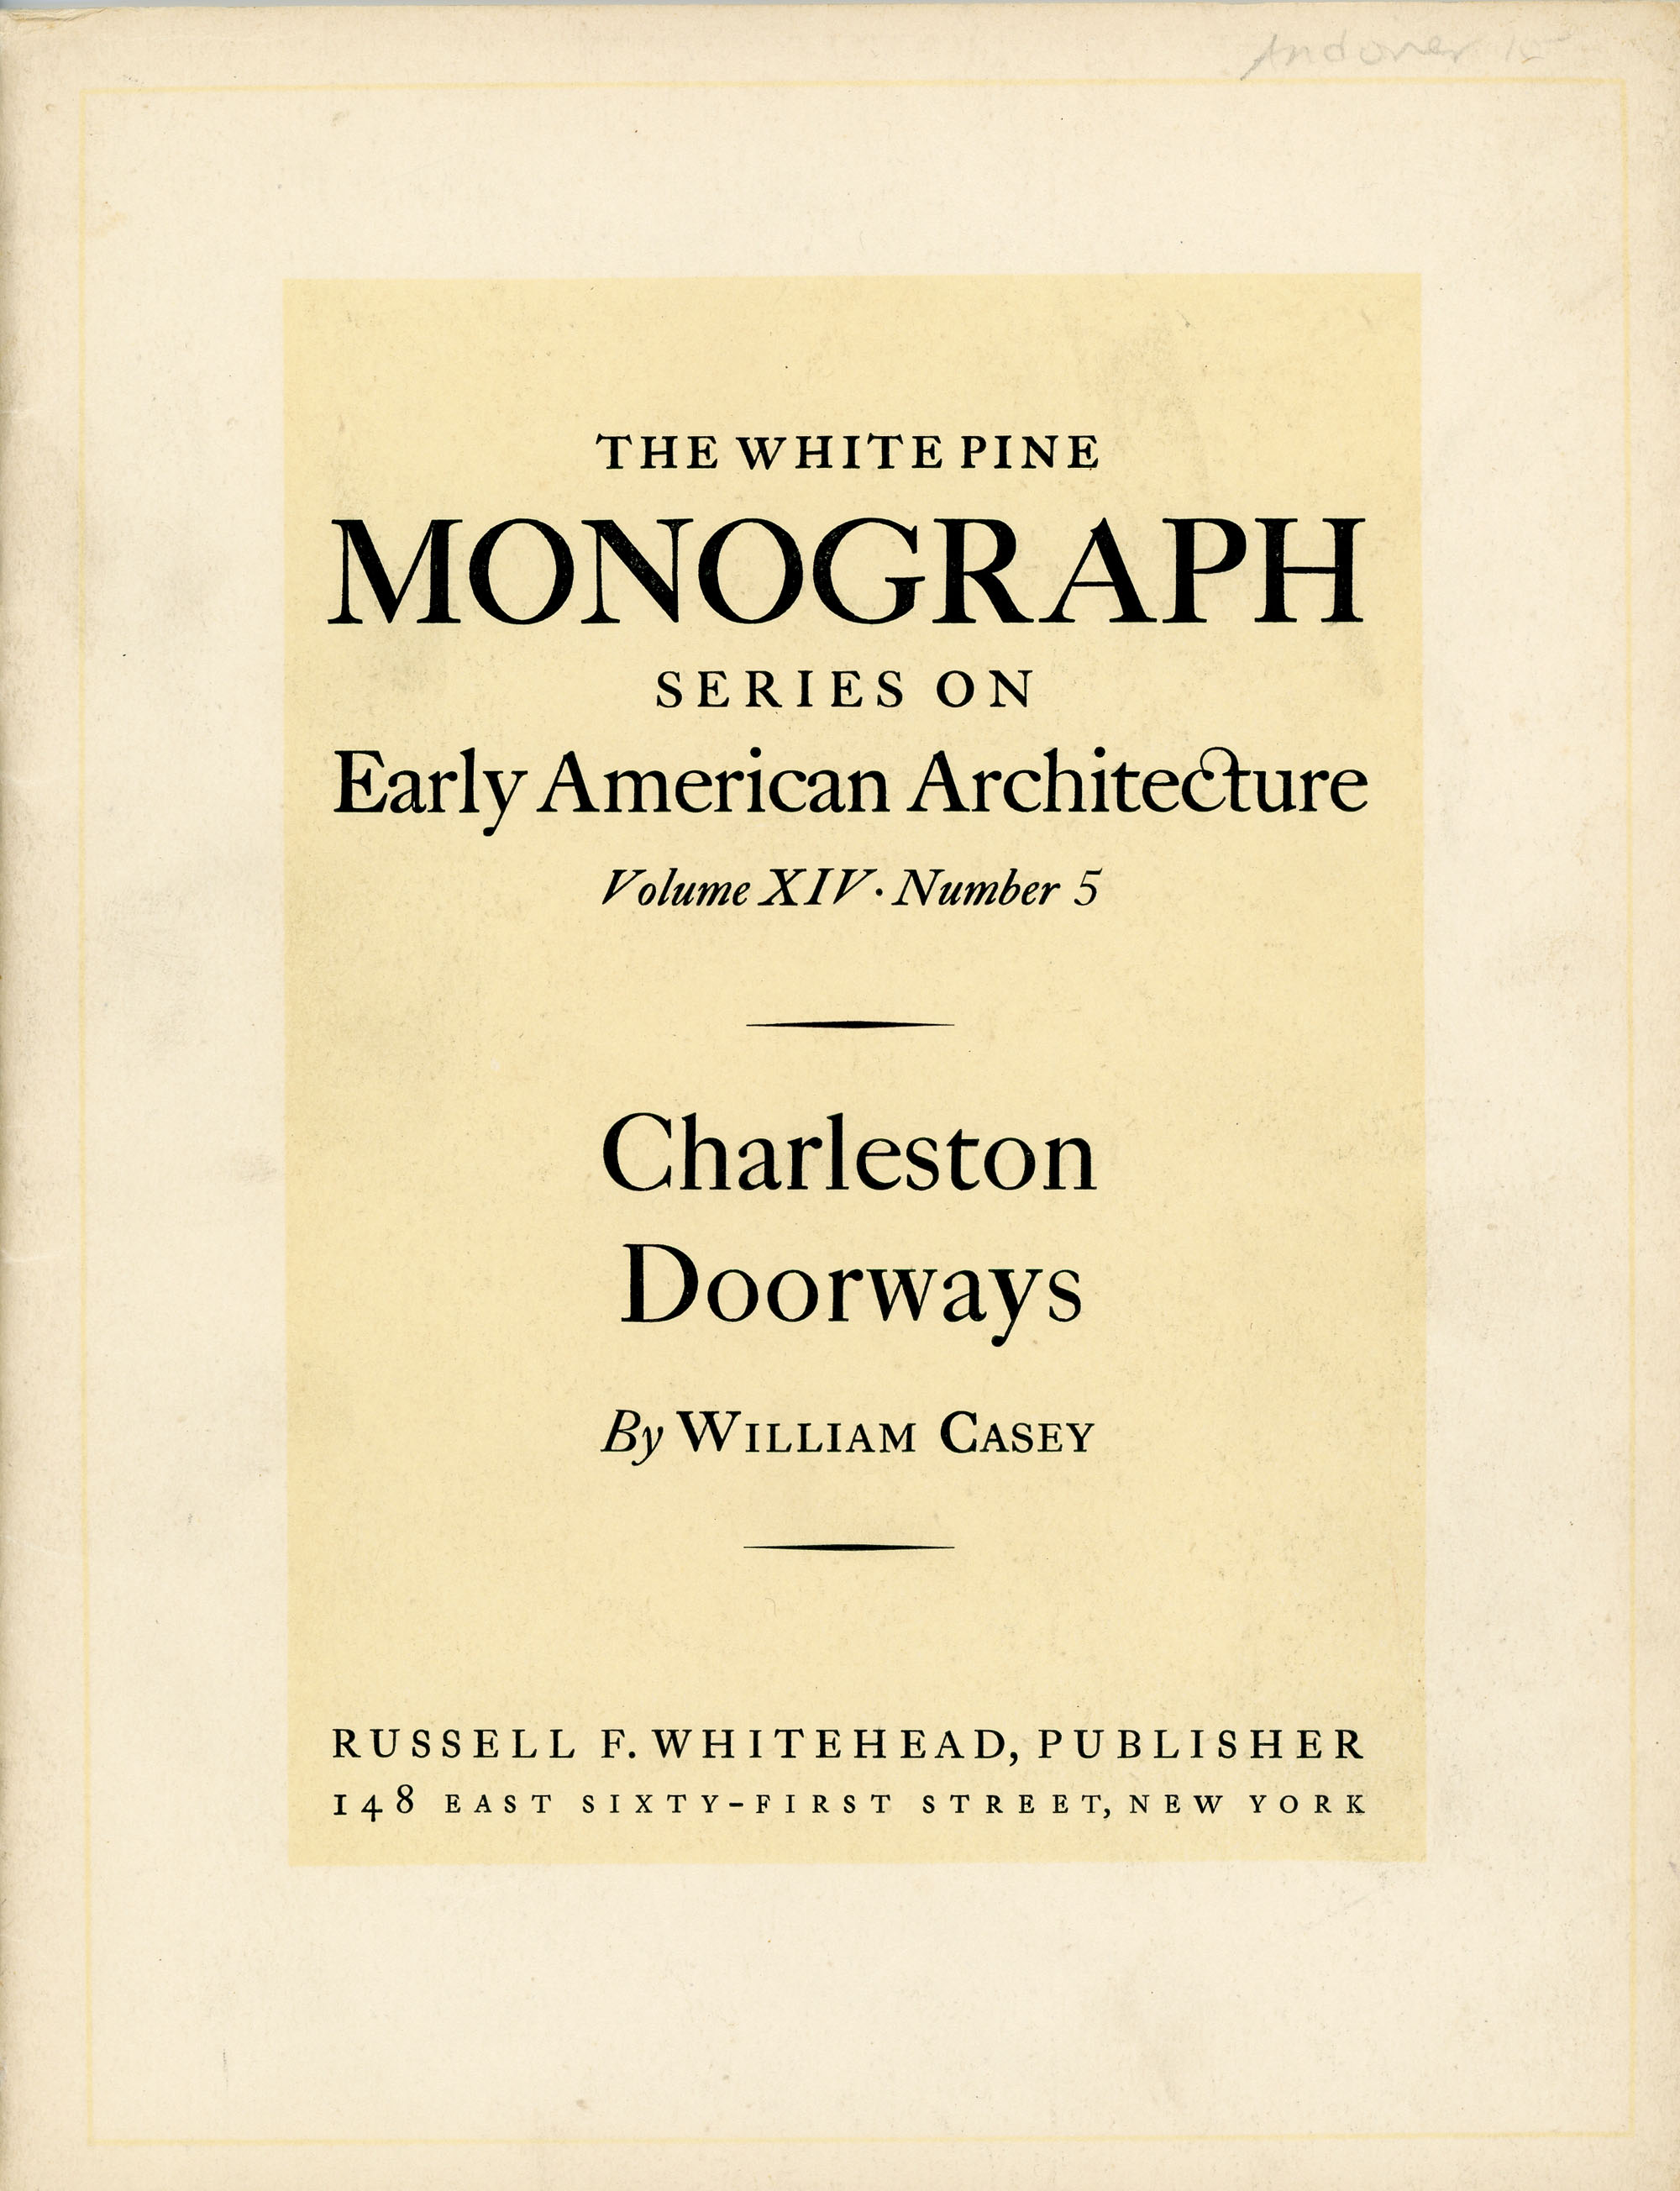 Charleston Doorways: Entrance Motives from a South Carolina City (White Pine Series of Architectural Monographs, vol. 14, no. 5)